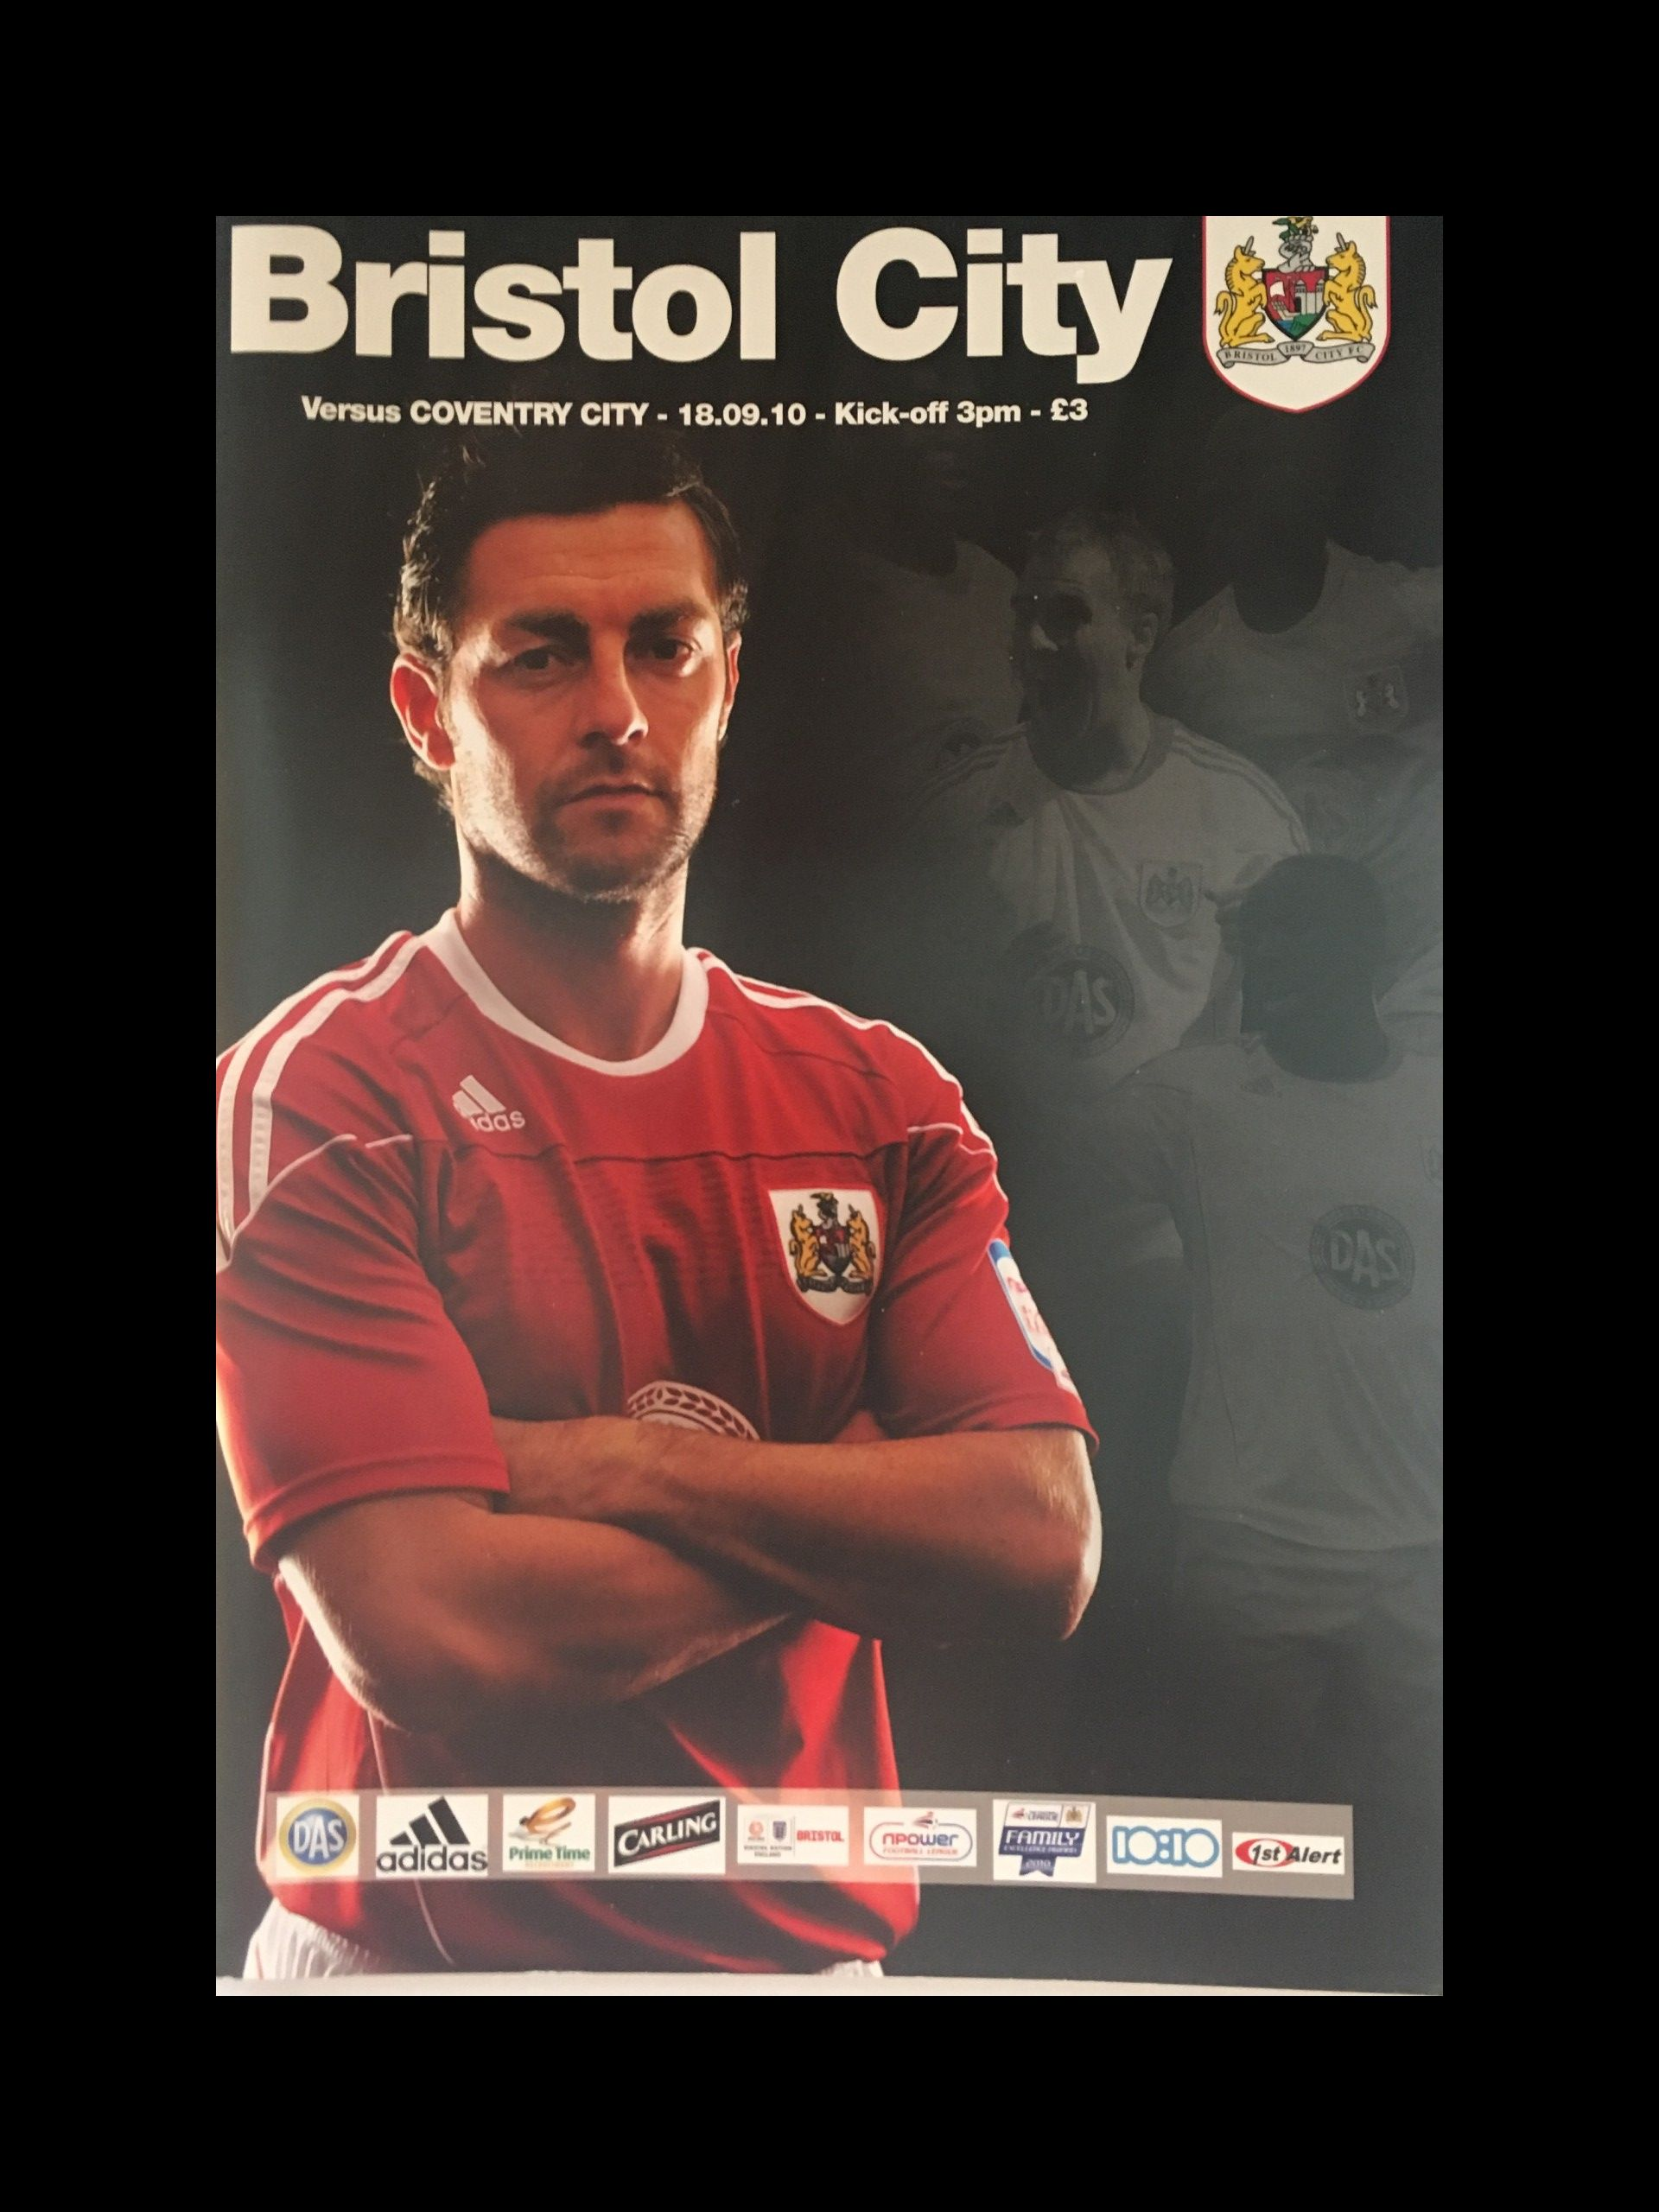 Bristol City v Coventry City 18-09-2010 Programme